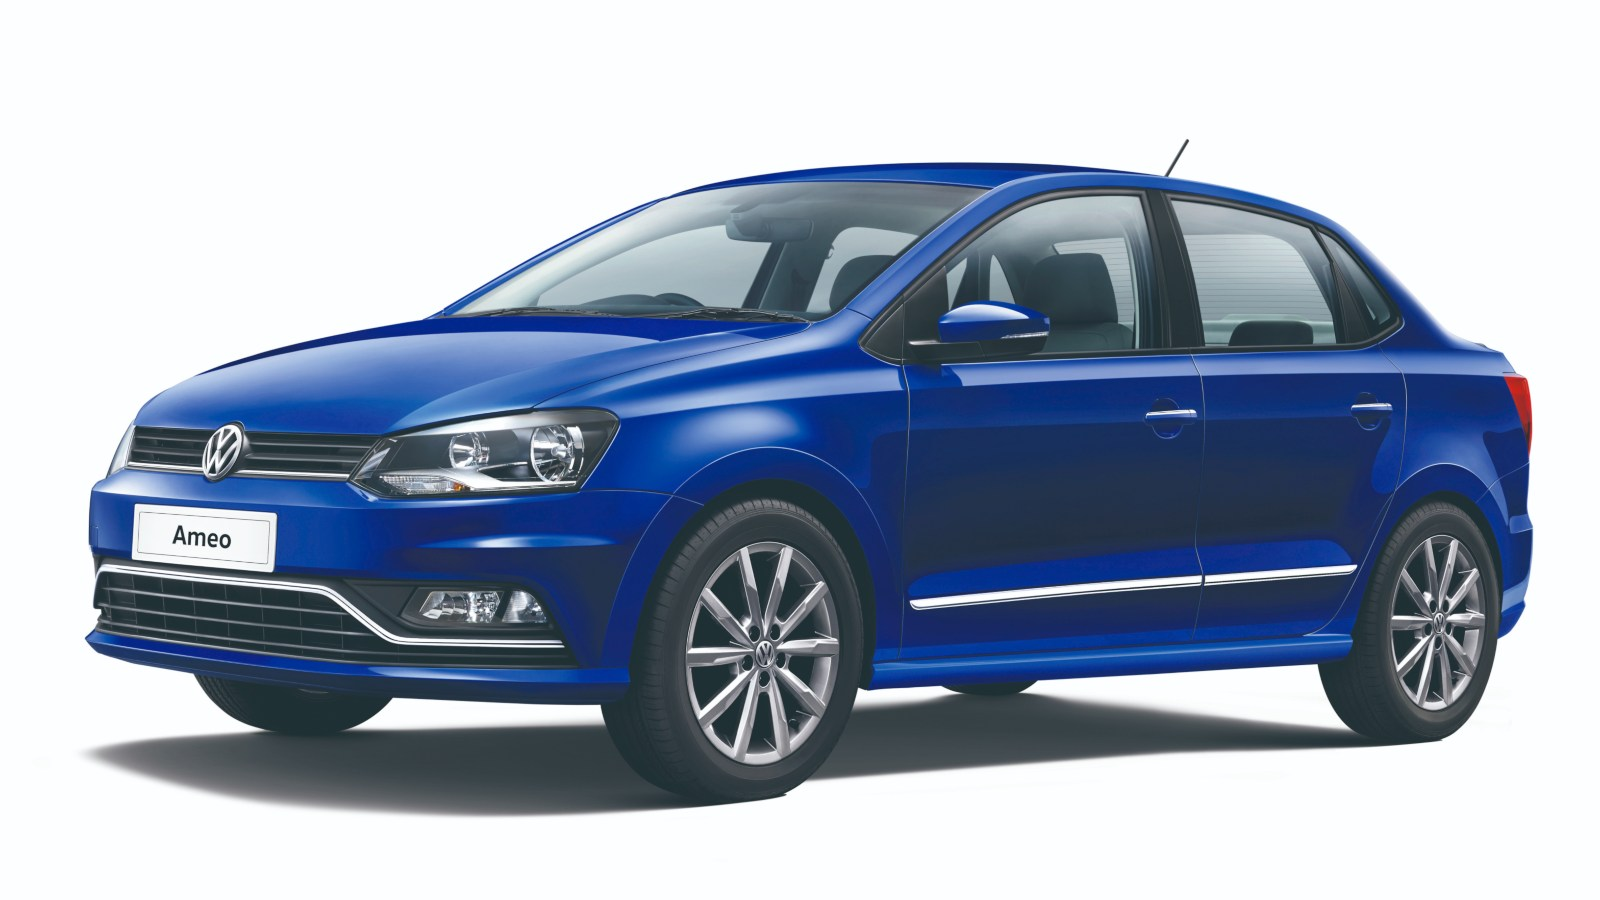 Volkswagen Has Introduced Ameo Corporate Edition With Both Petrol And Diesel Engines - Volkswagen Mumbai - Mody Auto Group